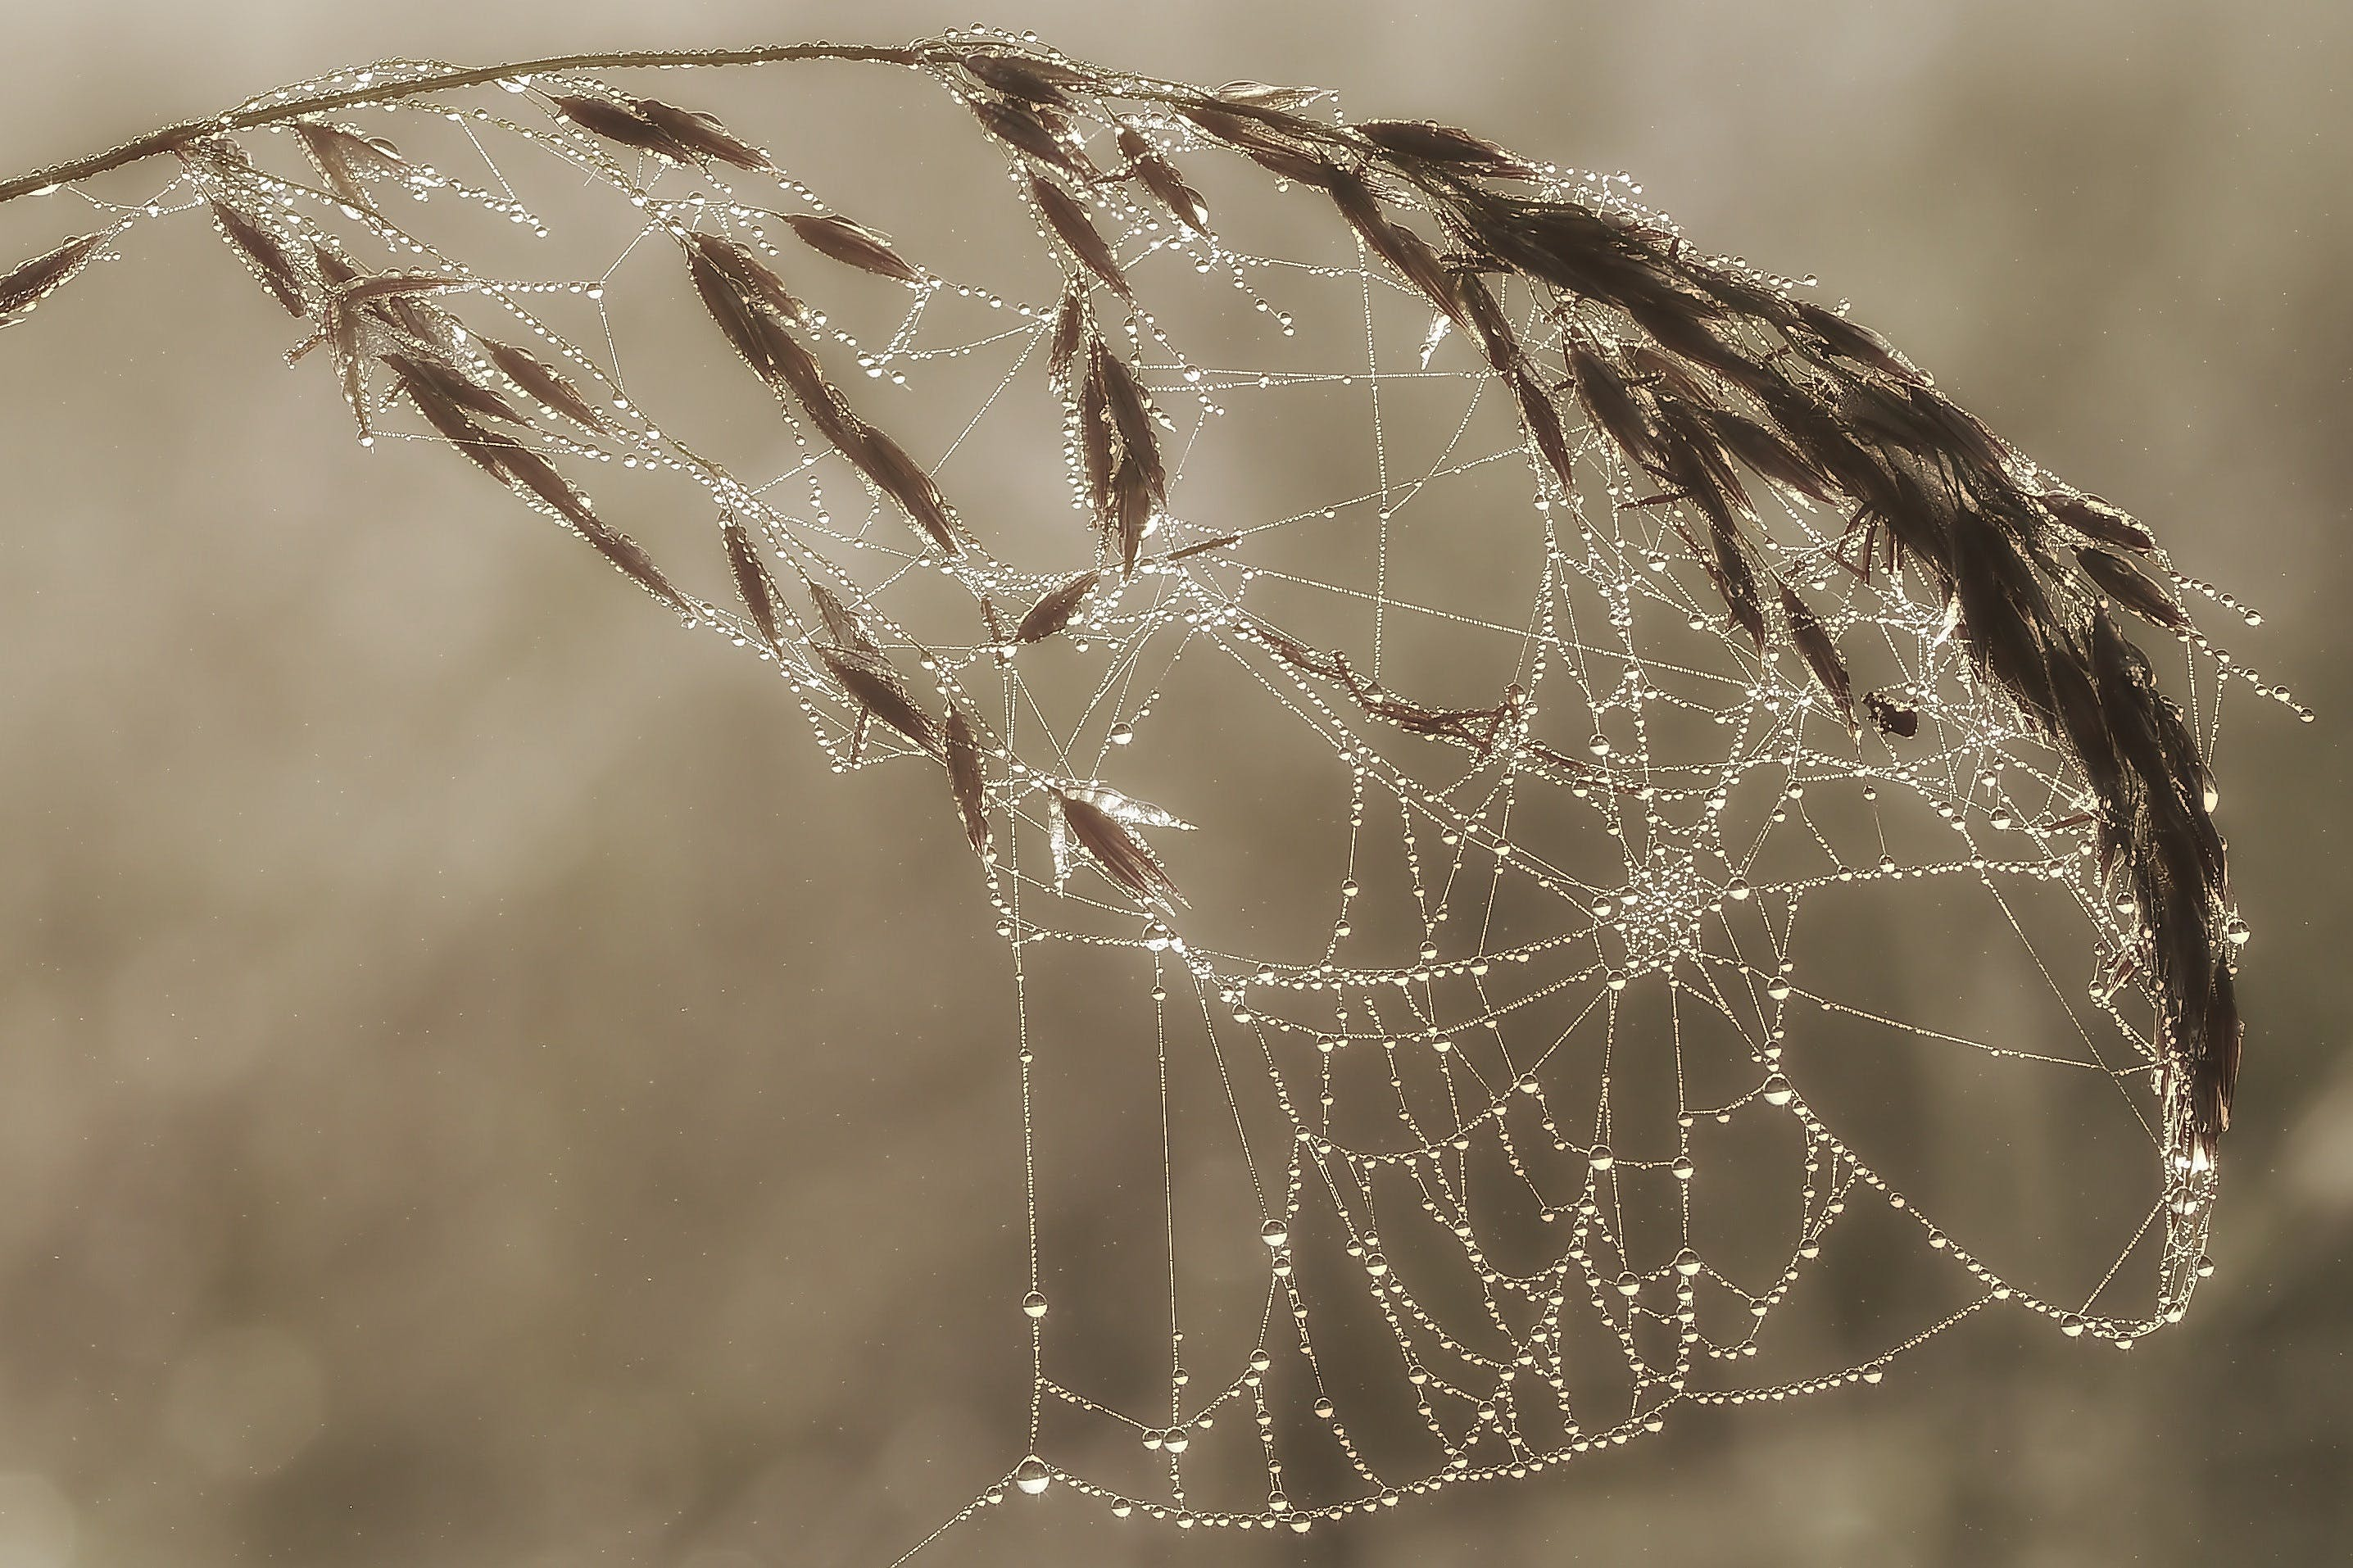 Free stock photo of plant, cobwebs, macro, cobweb